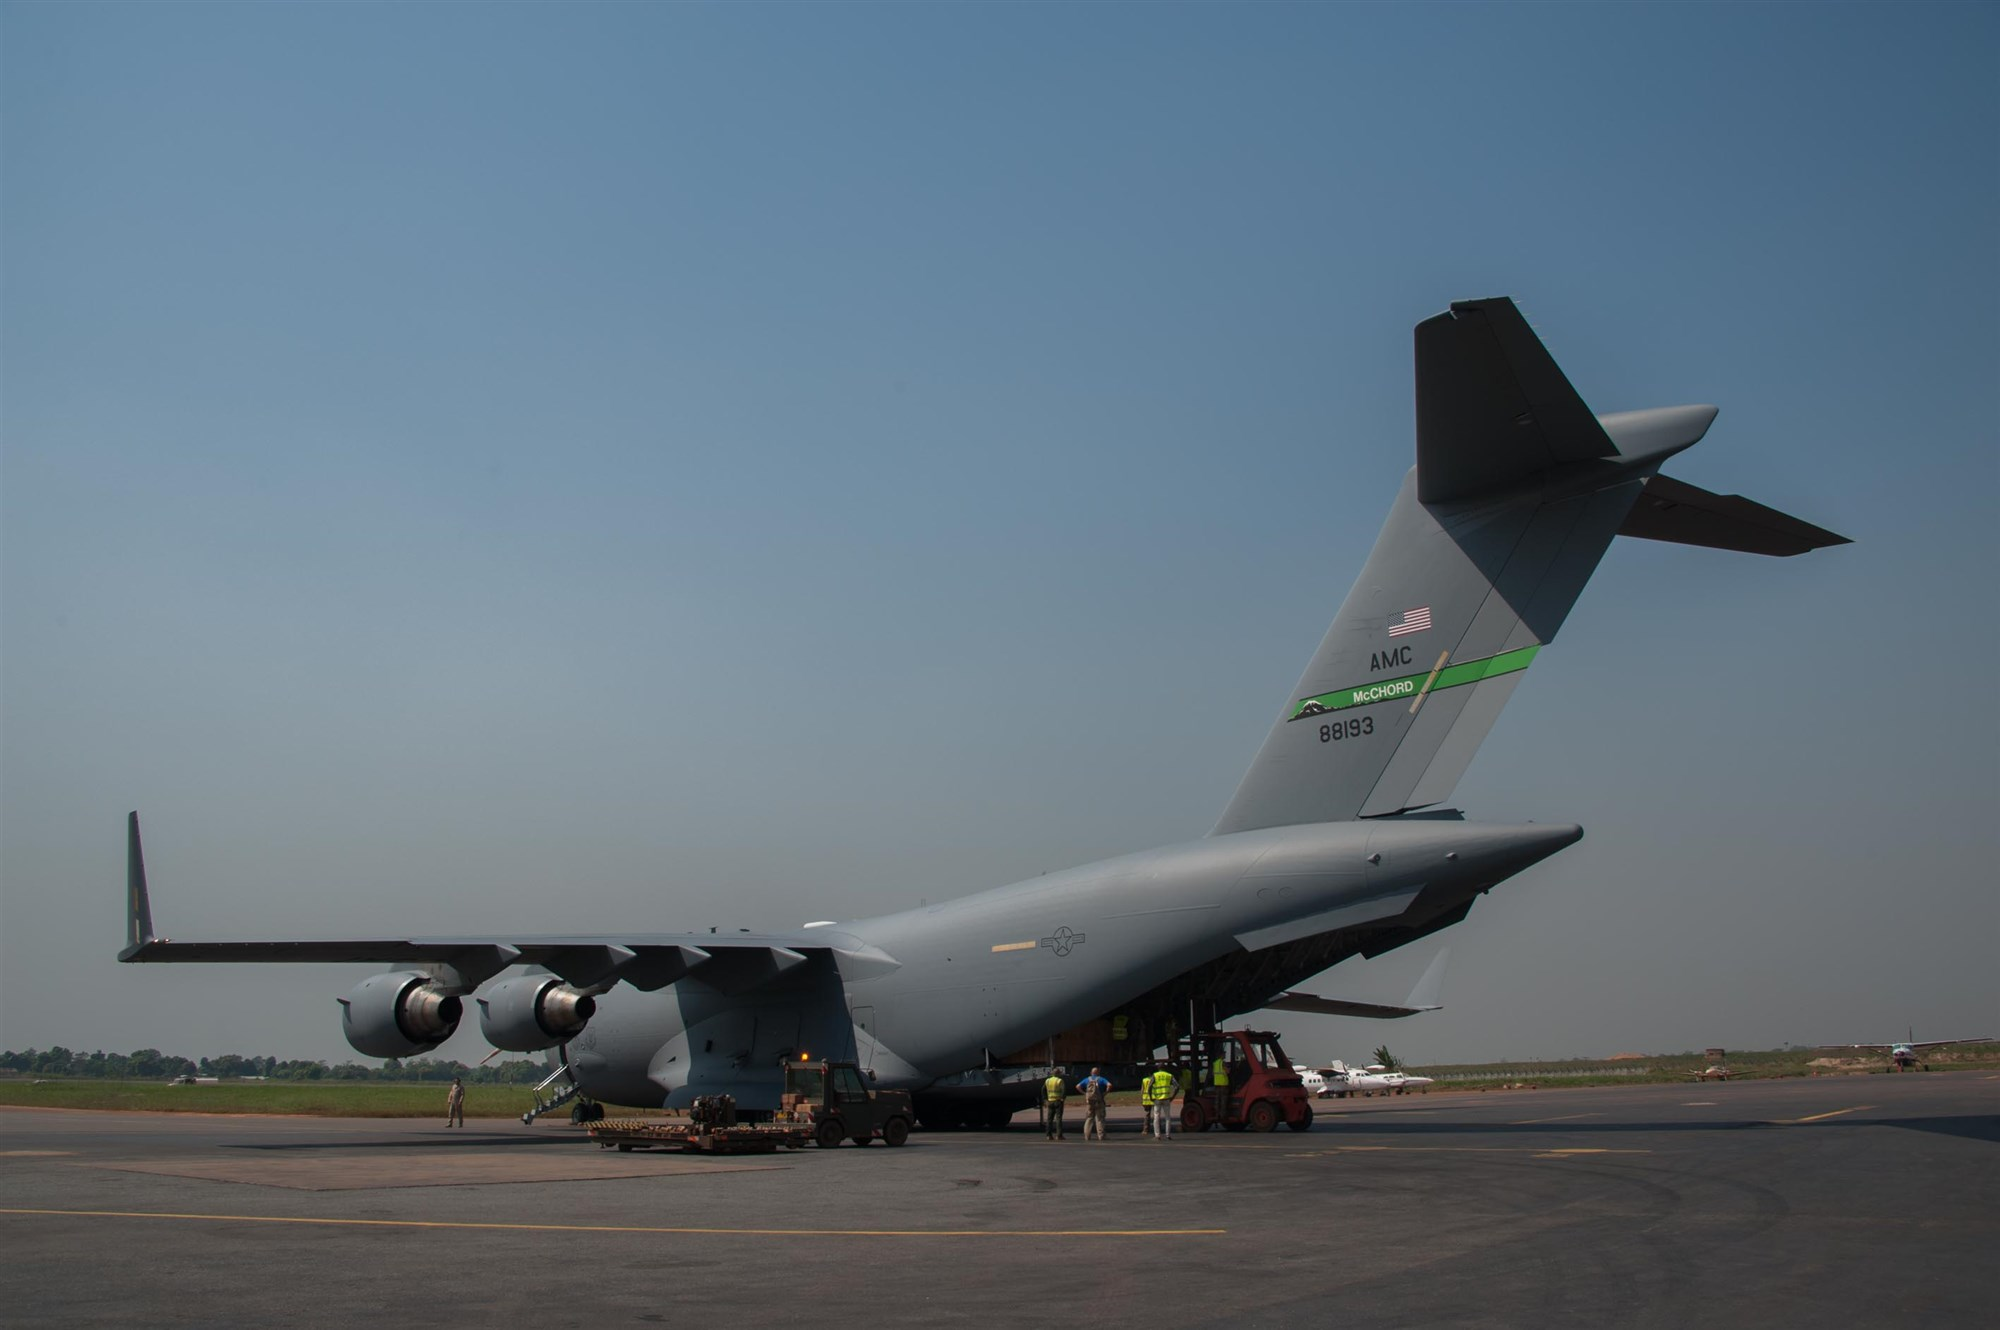 Strategic Lift: A U.S. C17 cargo plane arrives in Bangui, Central African Republic, Dec. 15, 2015. Both the U.S. and France provided military manpower in Libreville, Gabon, and the Central African Republic's capital, Bangui, to help with the loading/unloading and transport of equipment.  The result was the timely deployment of more than 450,000 pounds of vital equipment and vehicles for the Gabonese military. (Photo courtesy of French military, ADC Laminette/RELEASED)